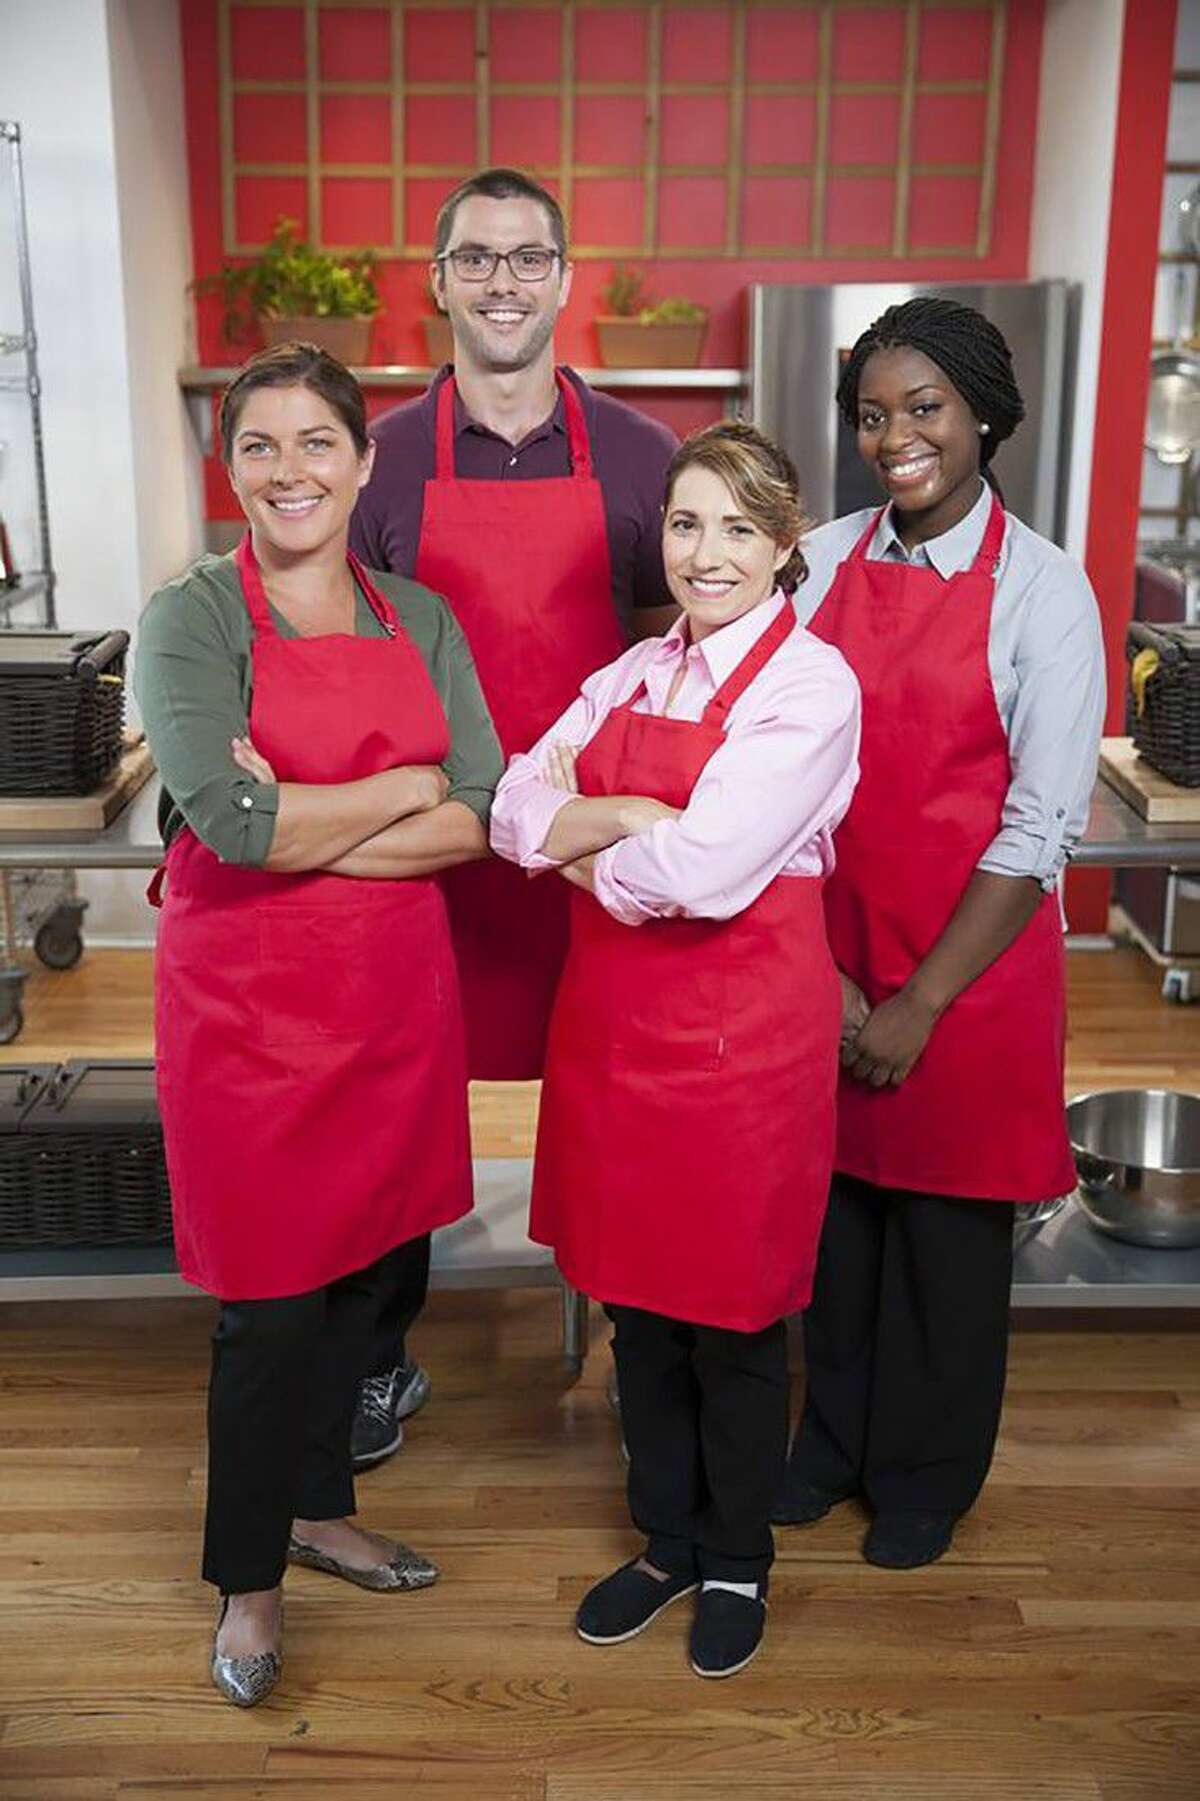 Jersey Village High School graduate and Hamilton Elementary School paraeducator Avanta Adeleke, far right, was a finalist in the Food Network 2015 Chopped at Home Challenge, and is currently in contention to be a 2016 finalist.